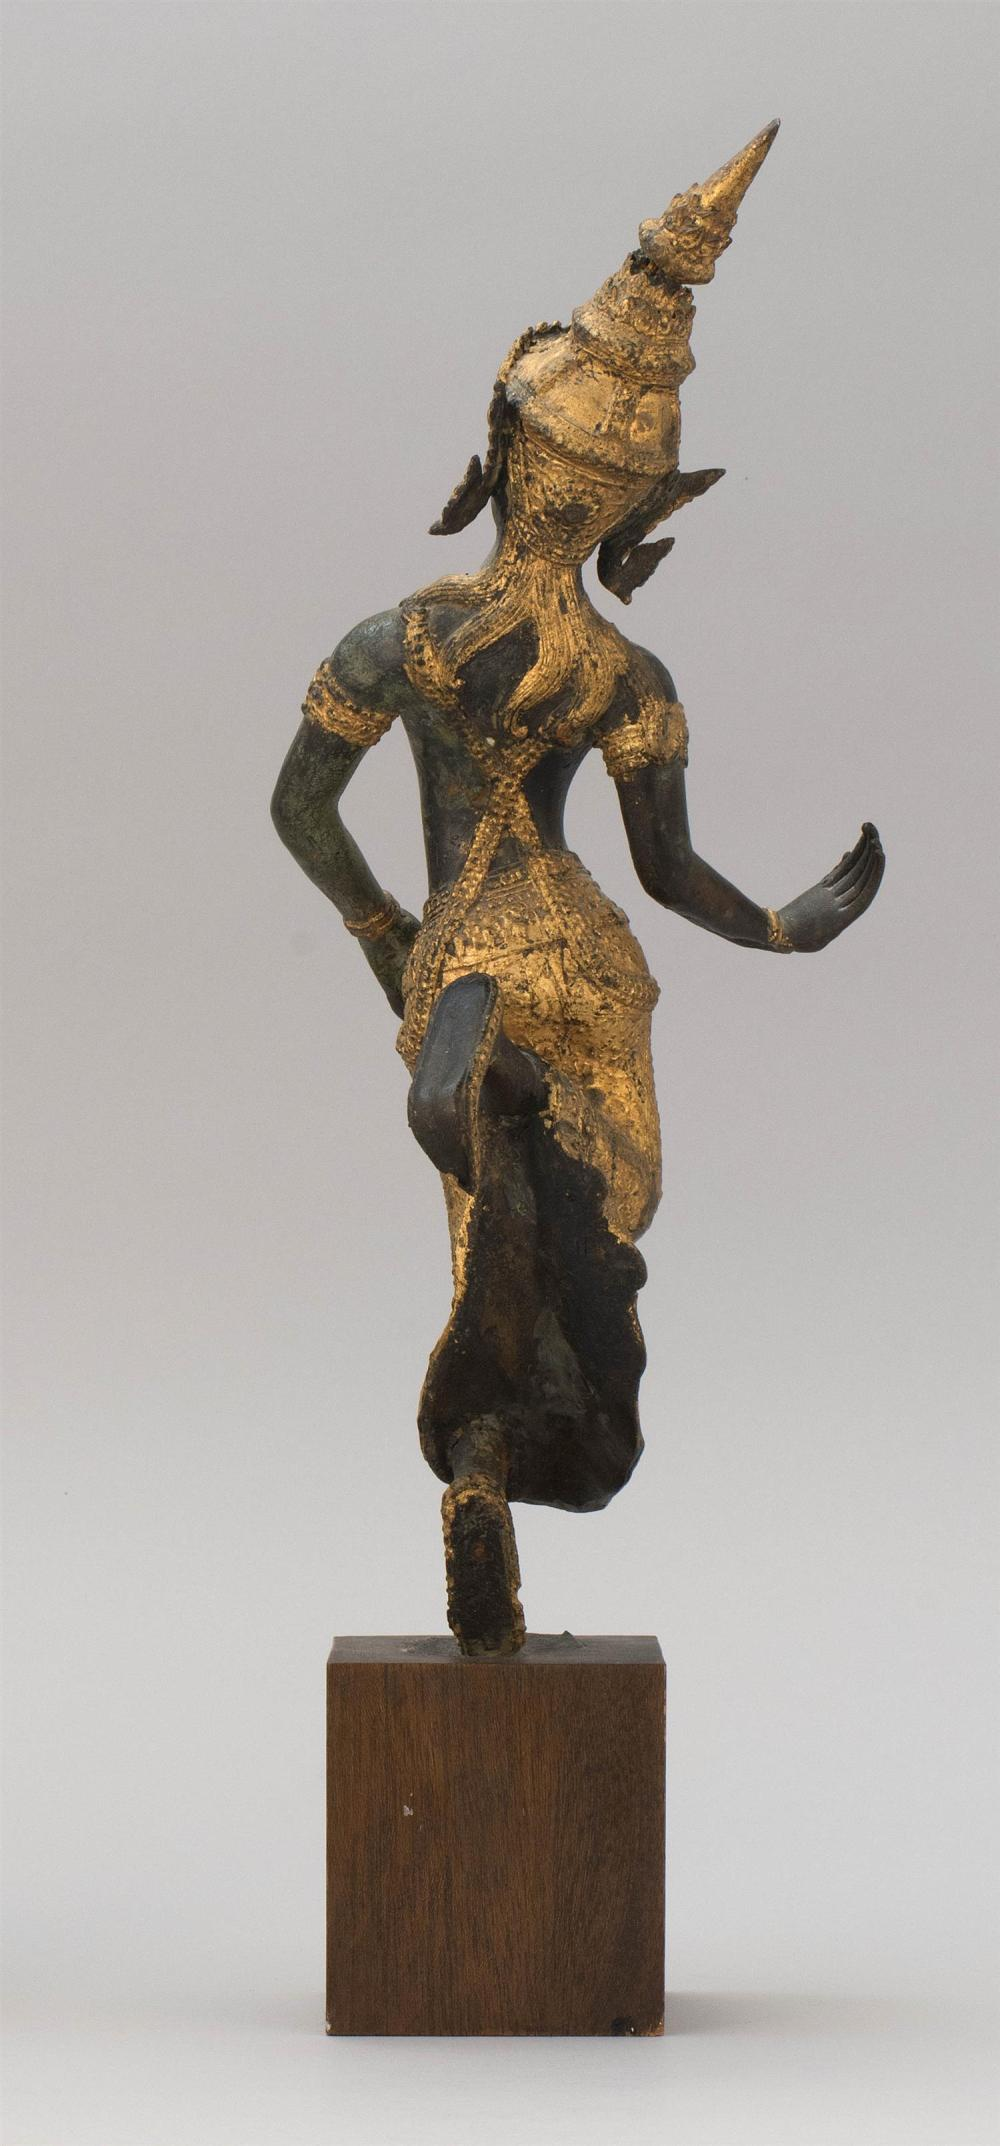 """Lot 974: THAI GILT-BRONZE FIGURE OF A DANCER Wearing a pointed headdress and flowing skirt. Height 13.5"""". Wood stand."""